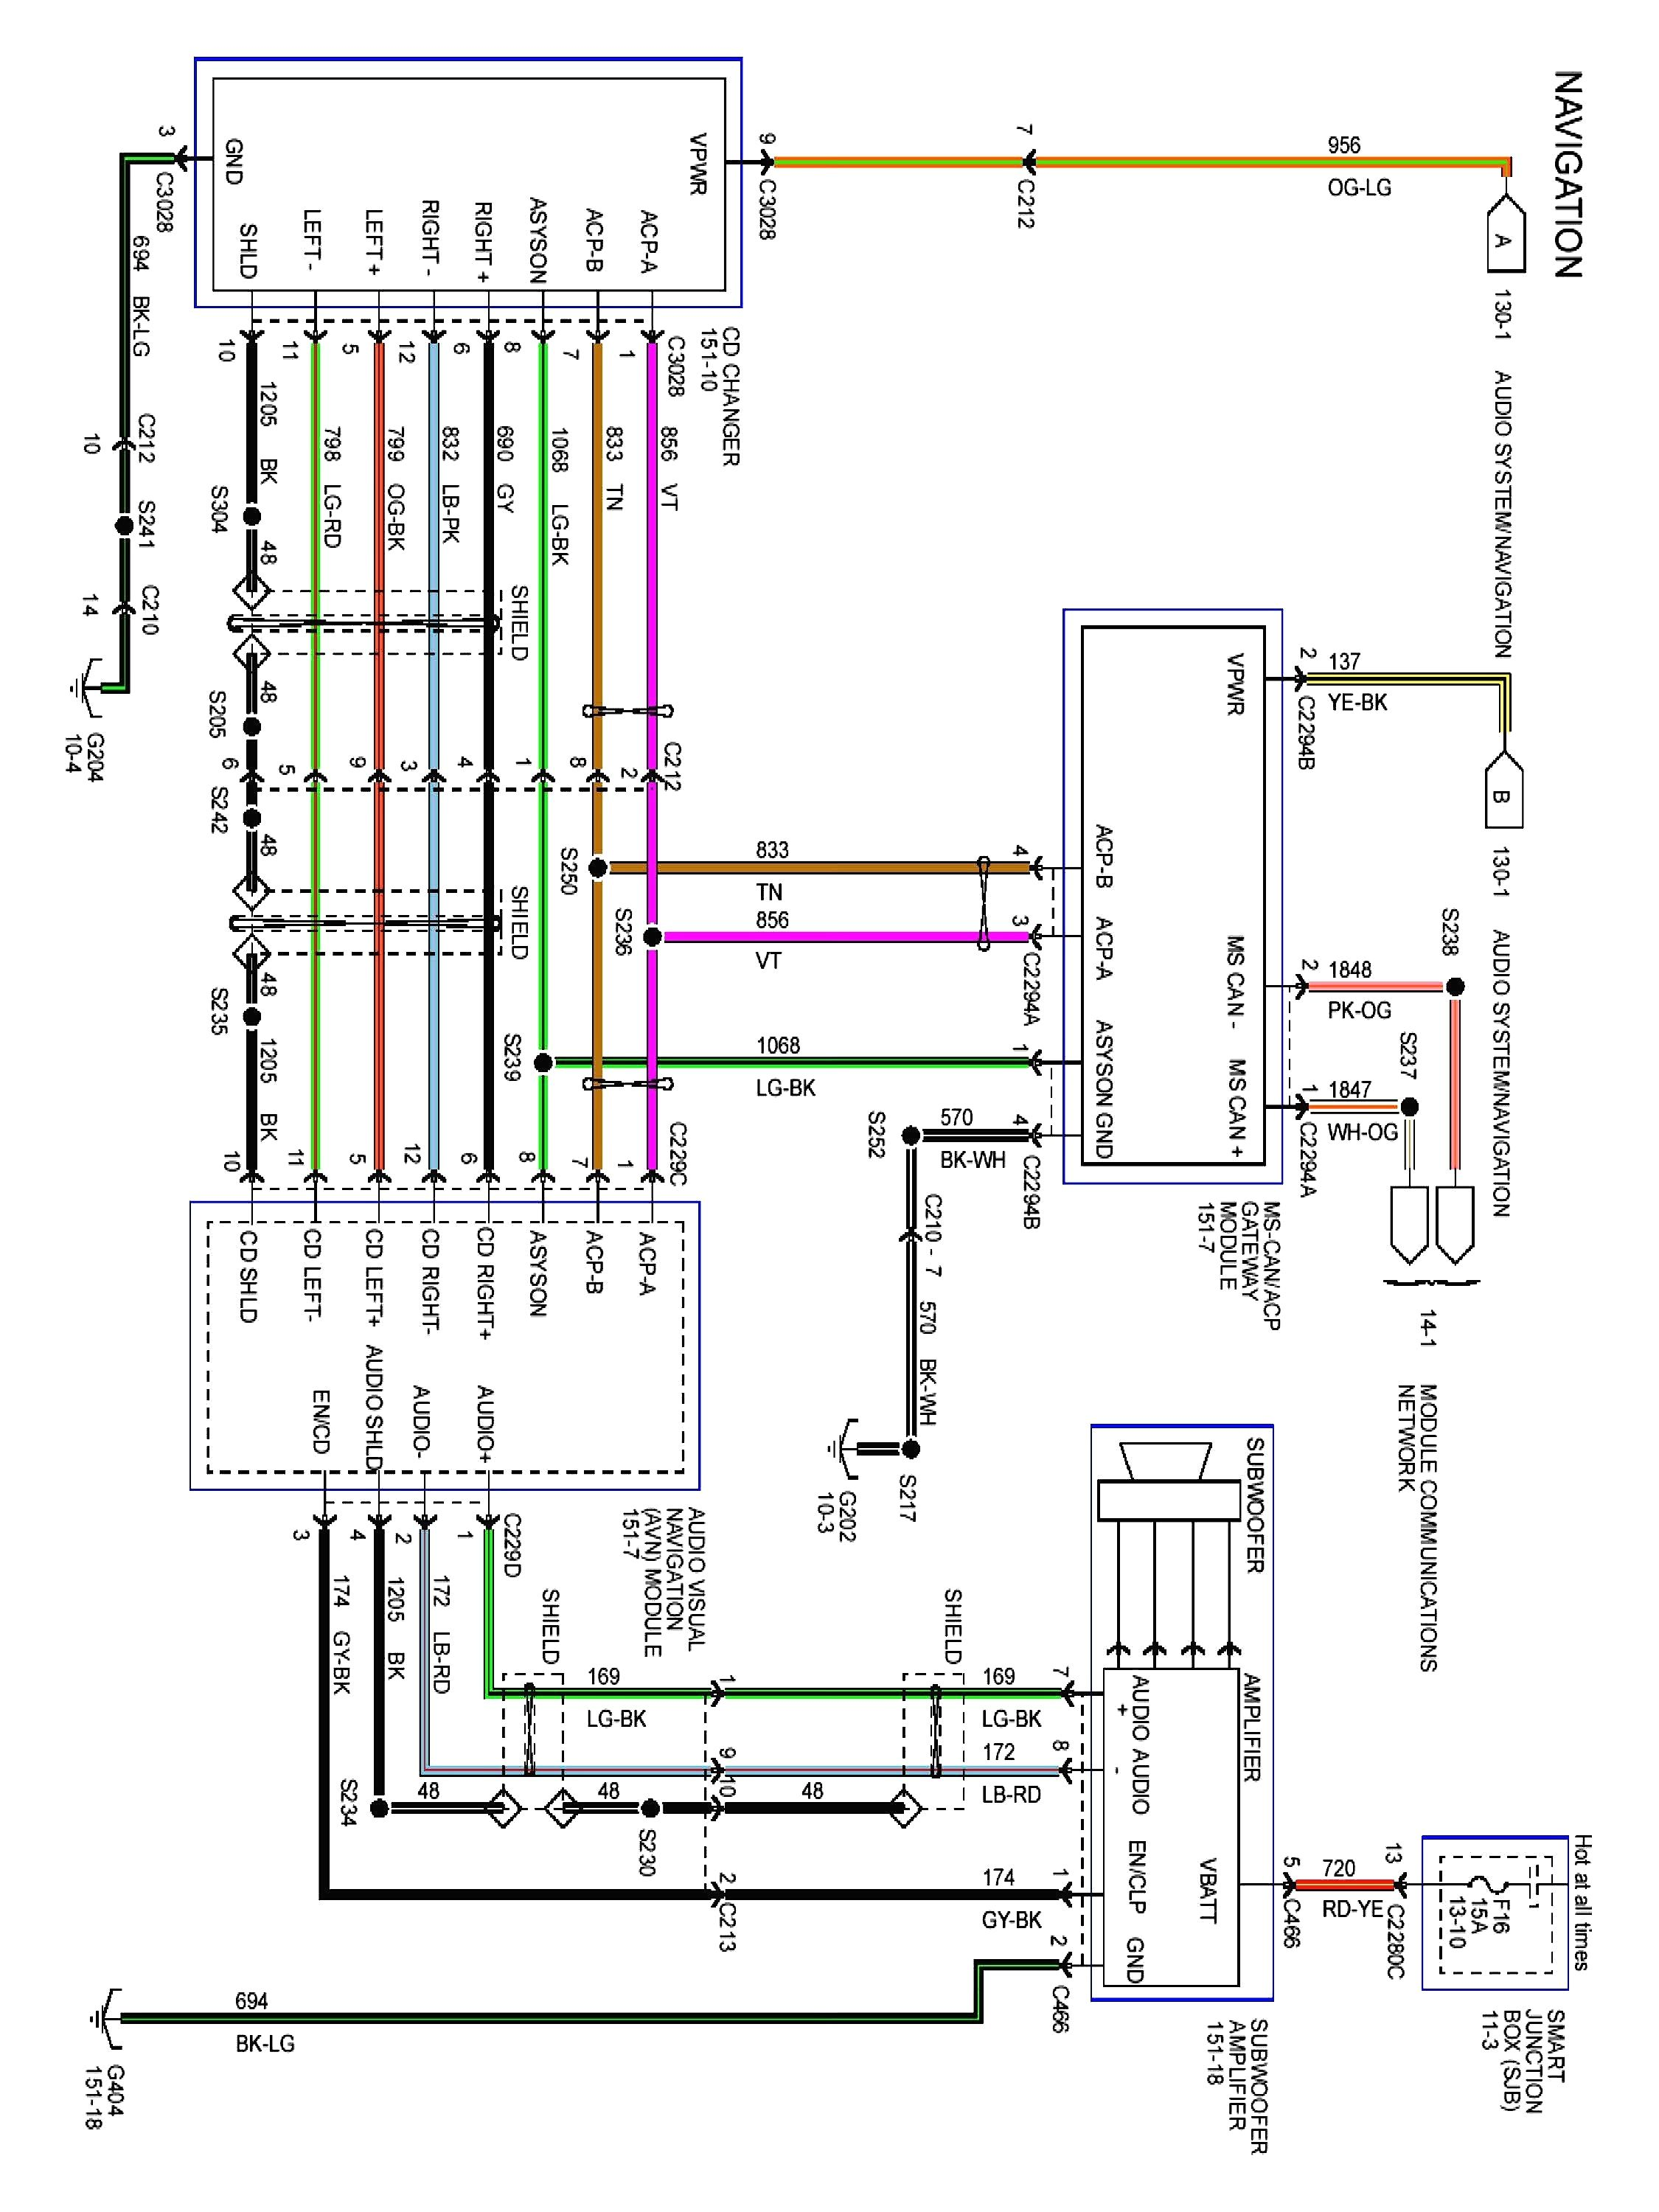 SO_3201] Ford Expedition Wiring Diagram Collection 2003 Ford Expedition Radio  Wiring DiagramObenz Neph Unde Xolia Unpr Eachi Expe Nful Mohammedshrine Librar Wiring 101